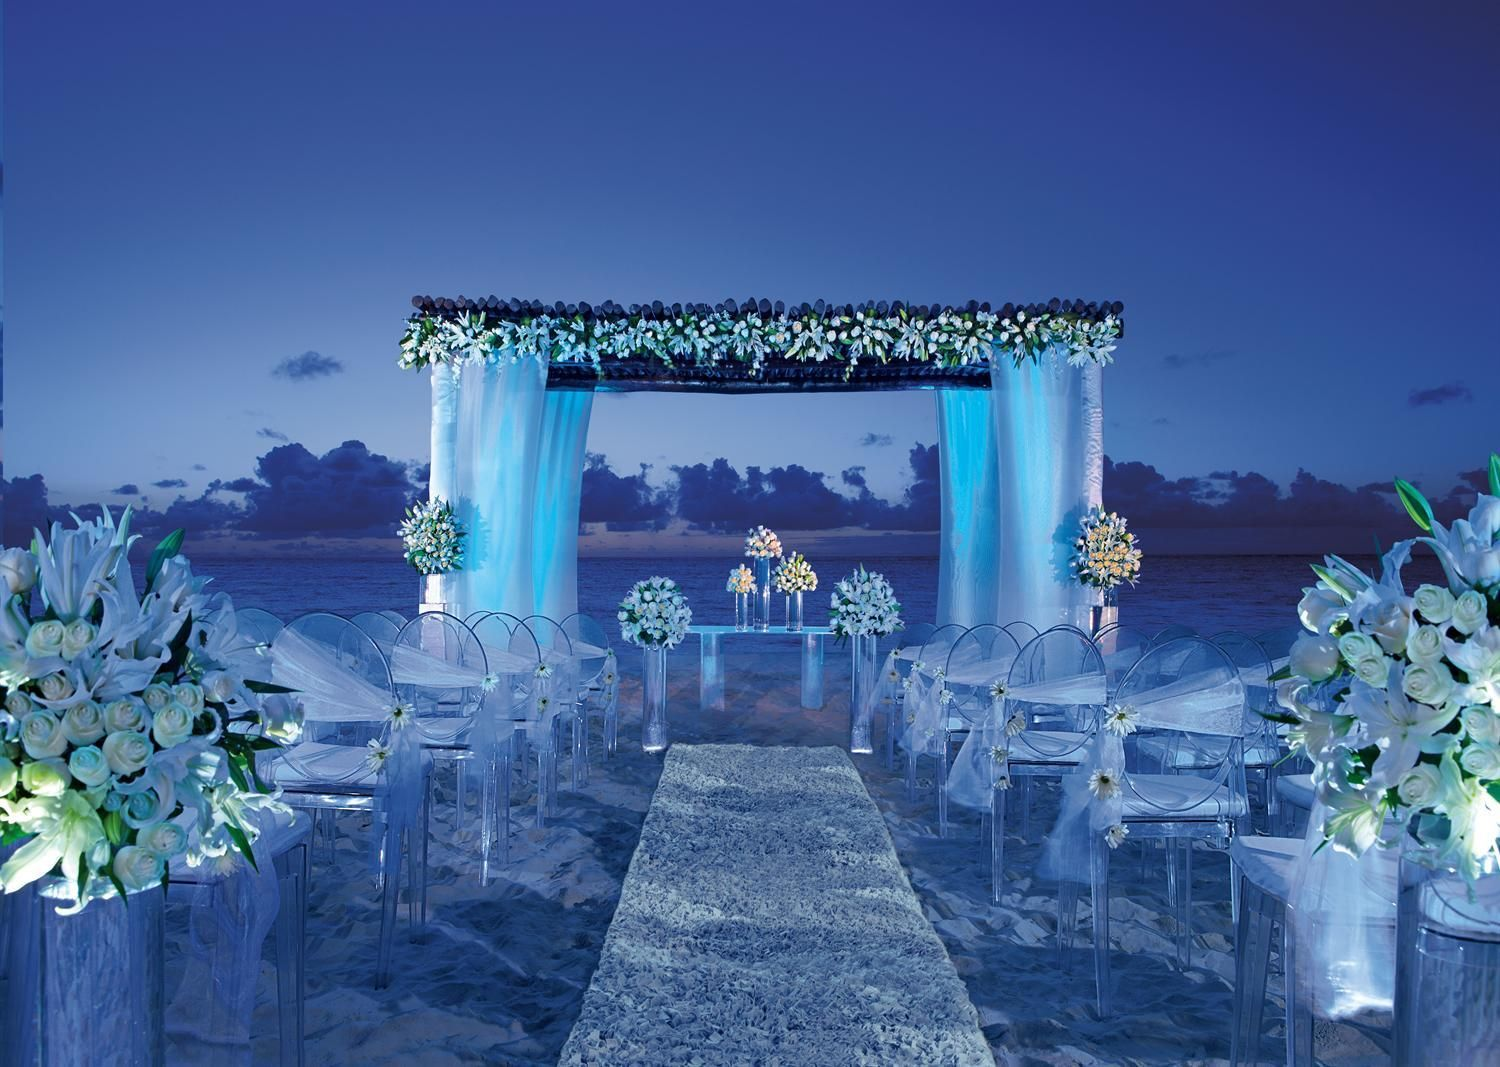 Beach Gazebo Wedding Ceremony Arch Decorations Ideas Night Beach